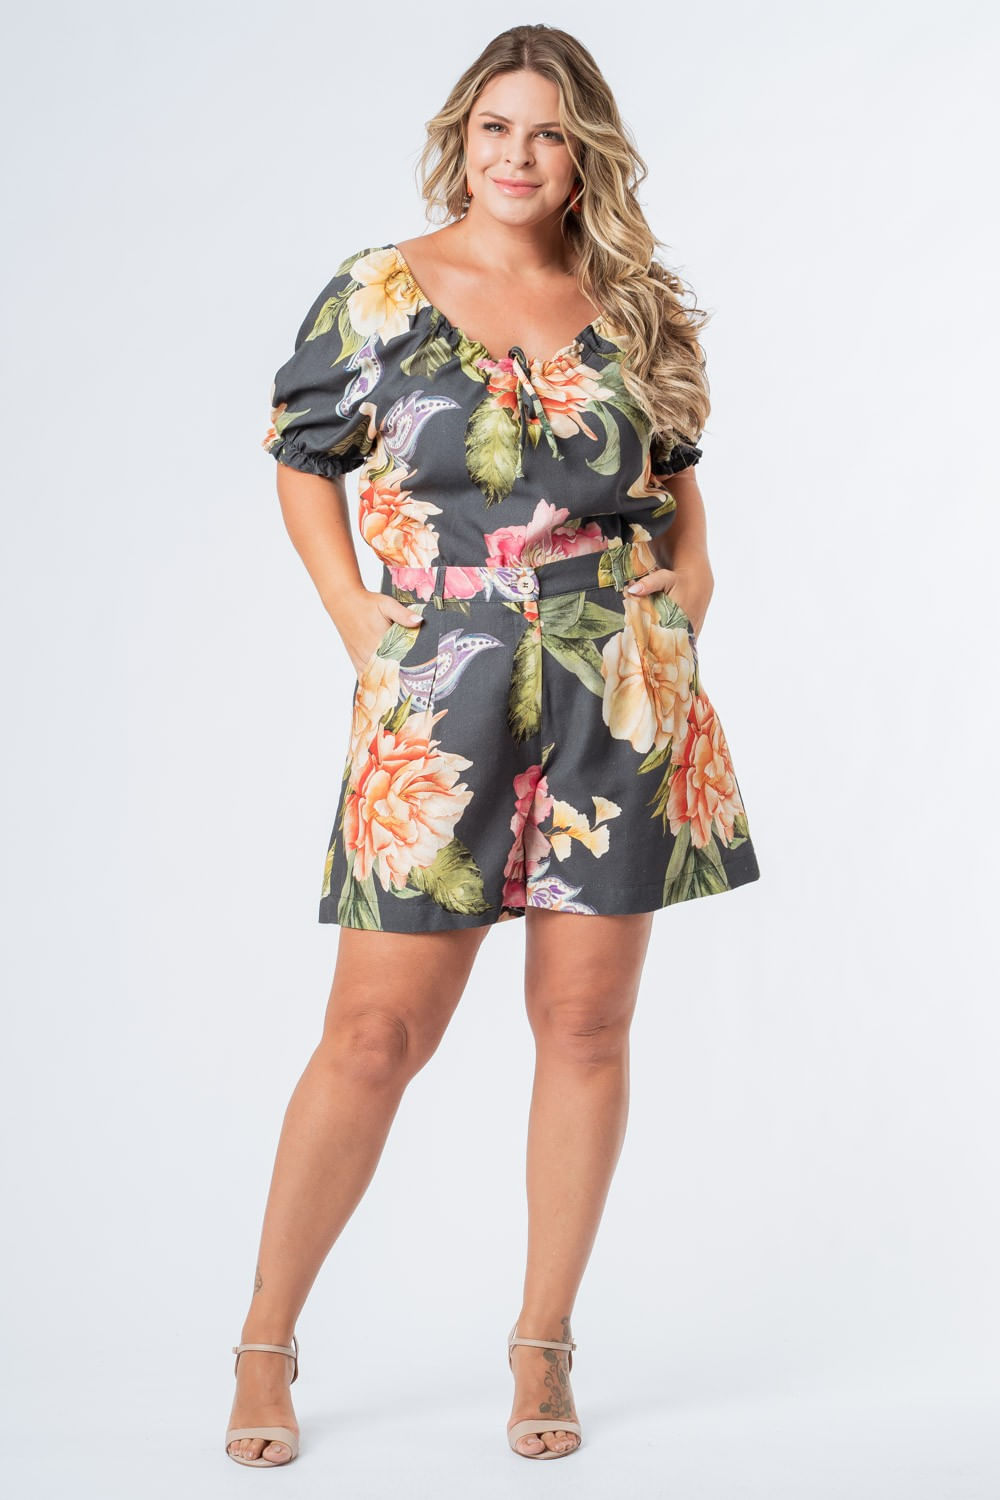 shorts_plus_size_rosa_cash_preto_20101_1_20201008090826